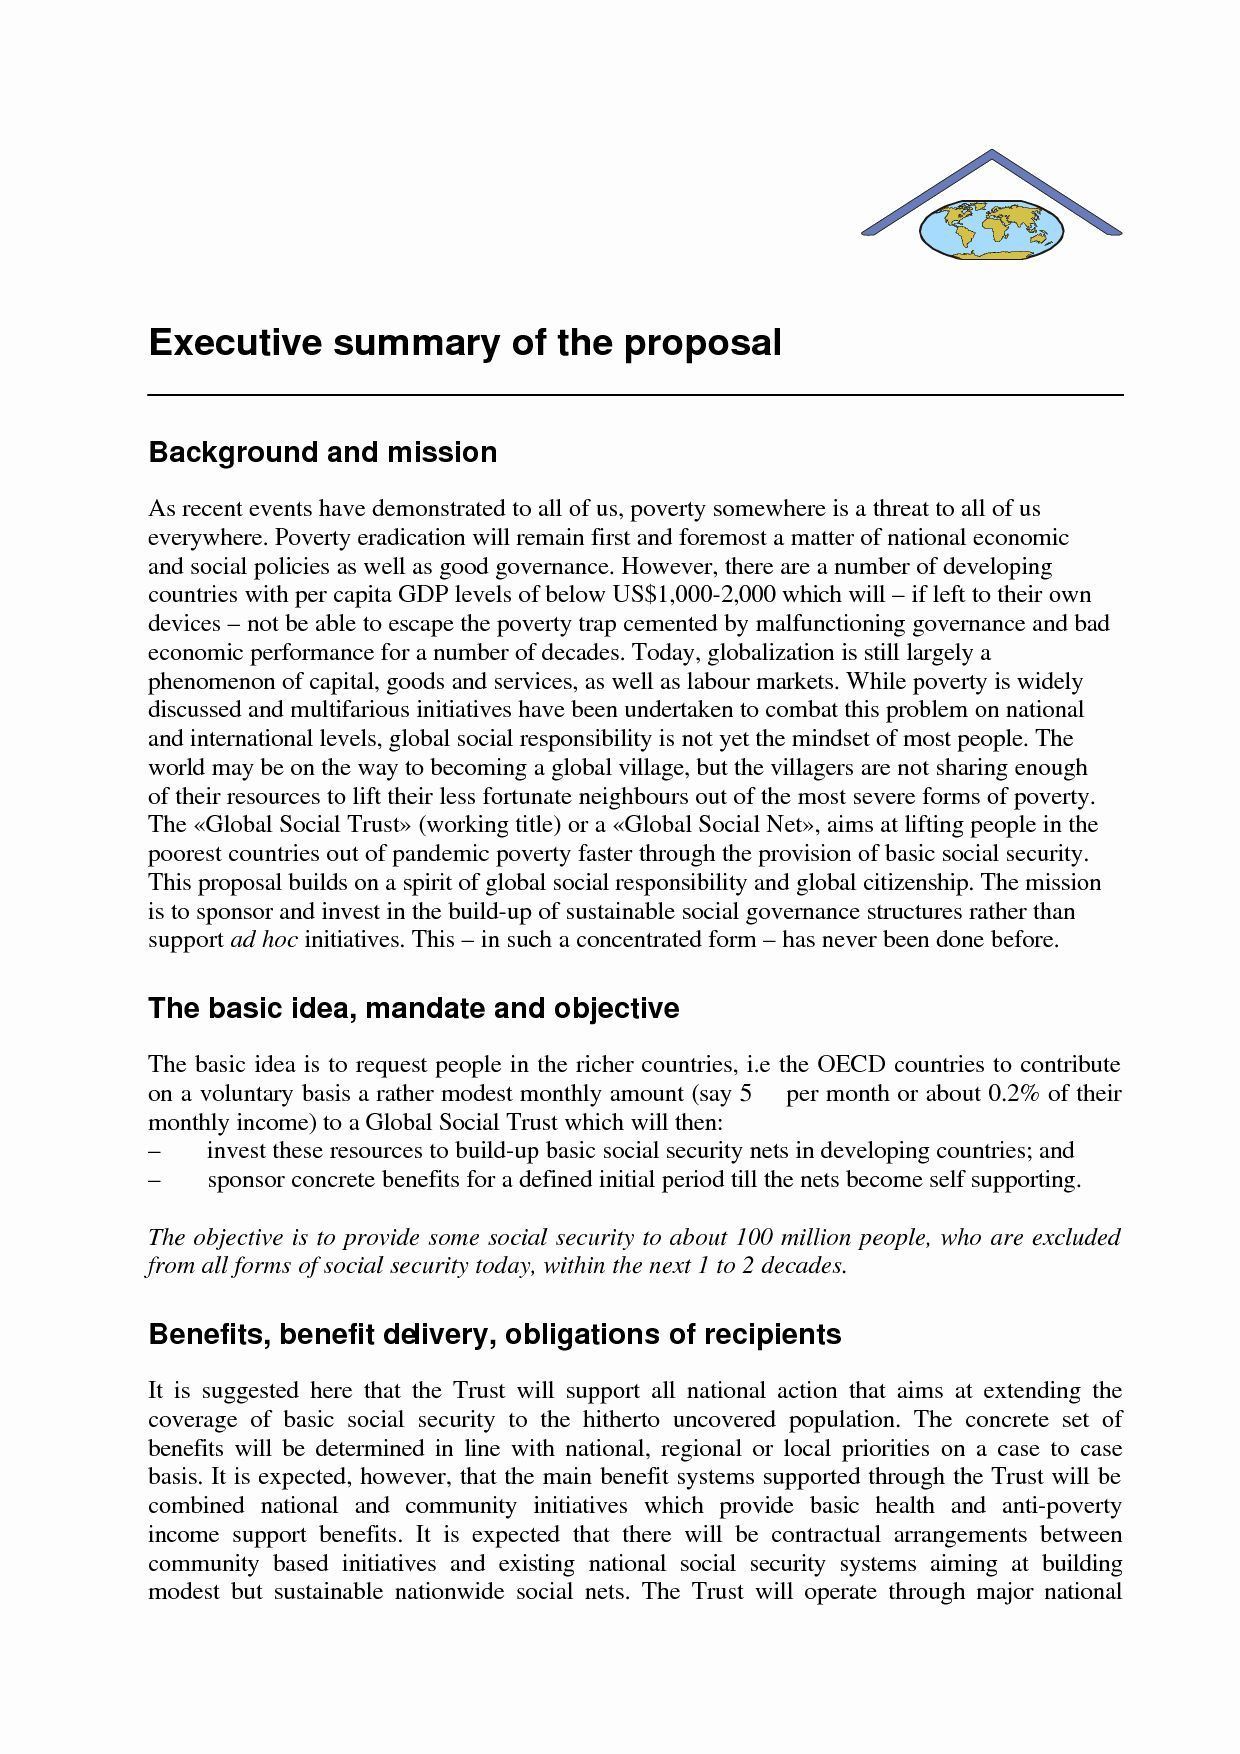 000 Best Executive Summary Template For Proposal. Idea  Sample Proposal Pdf ProjectFull